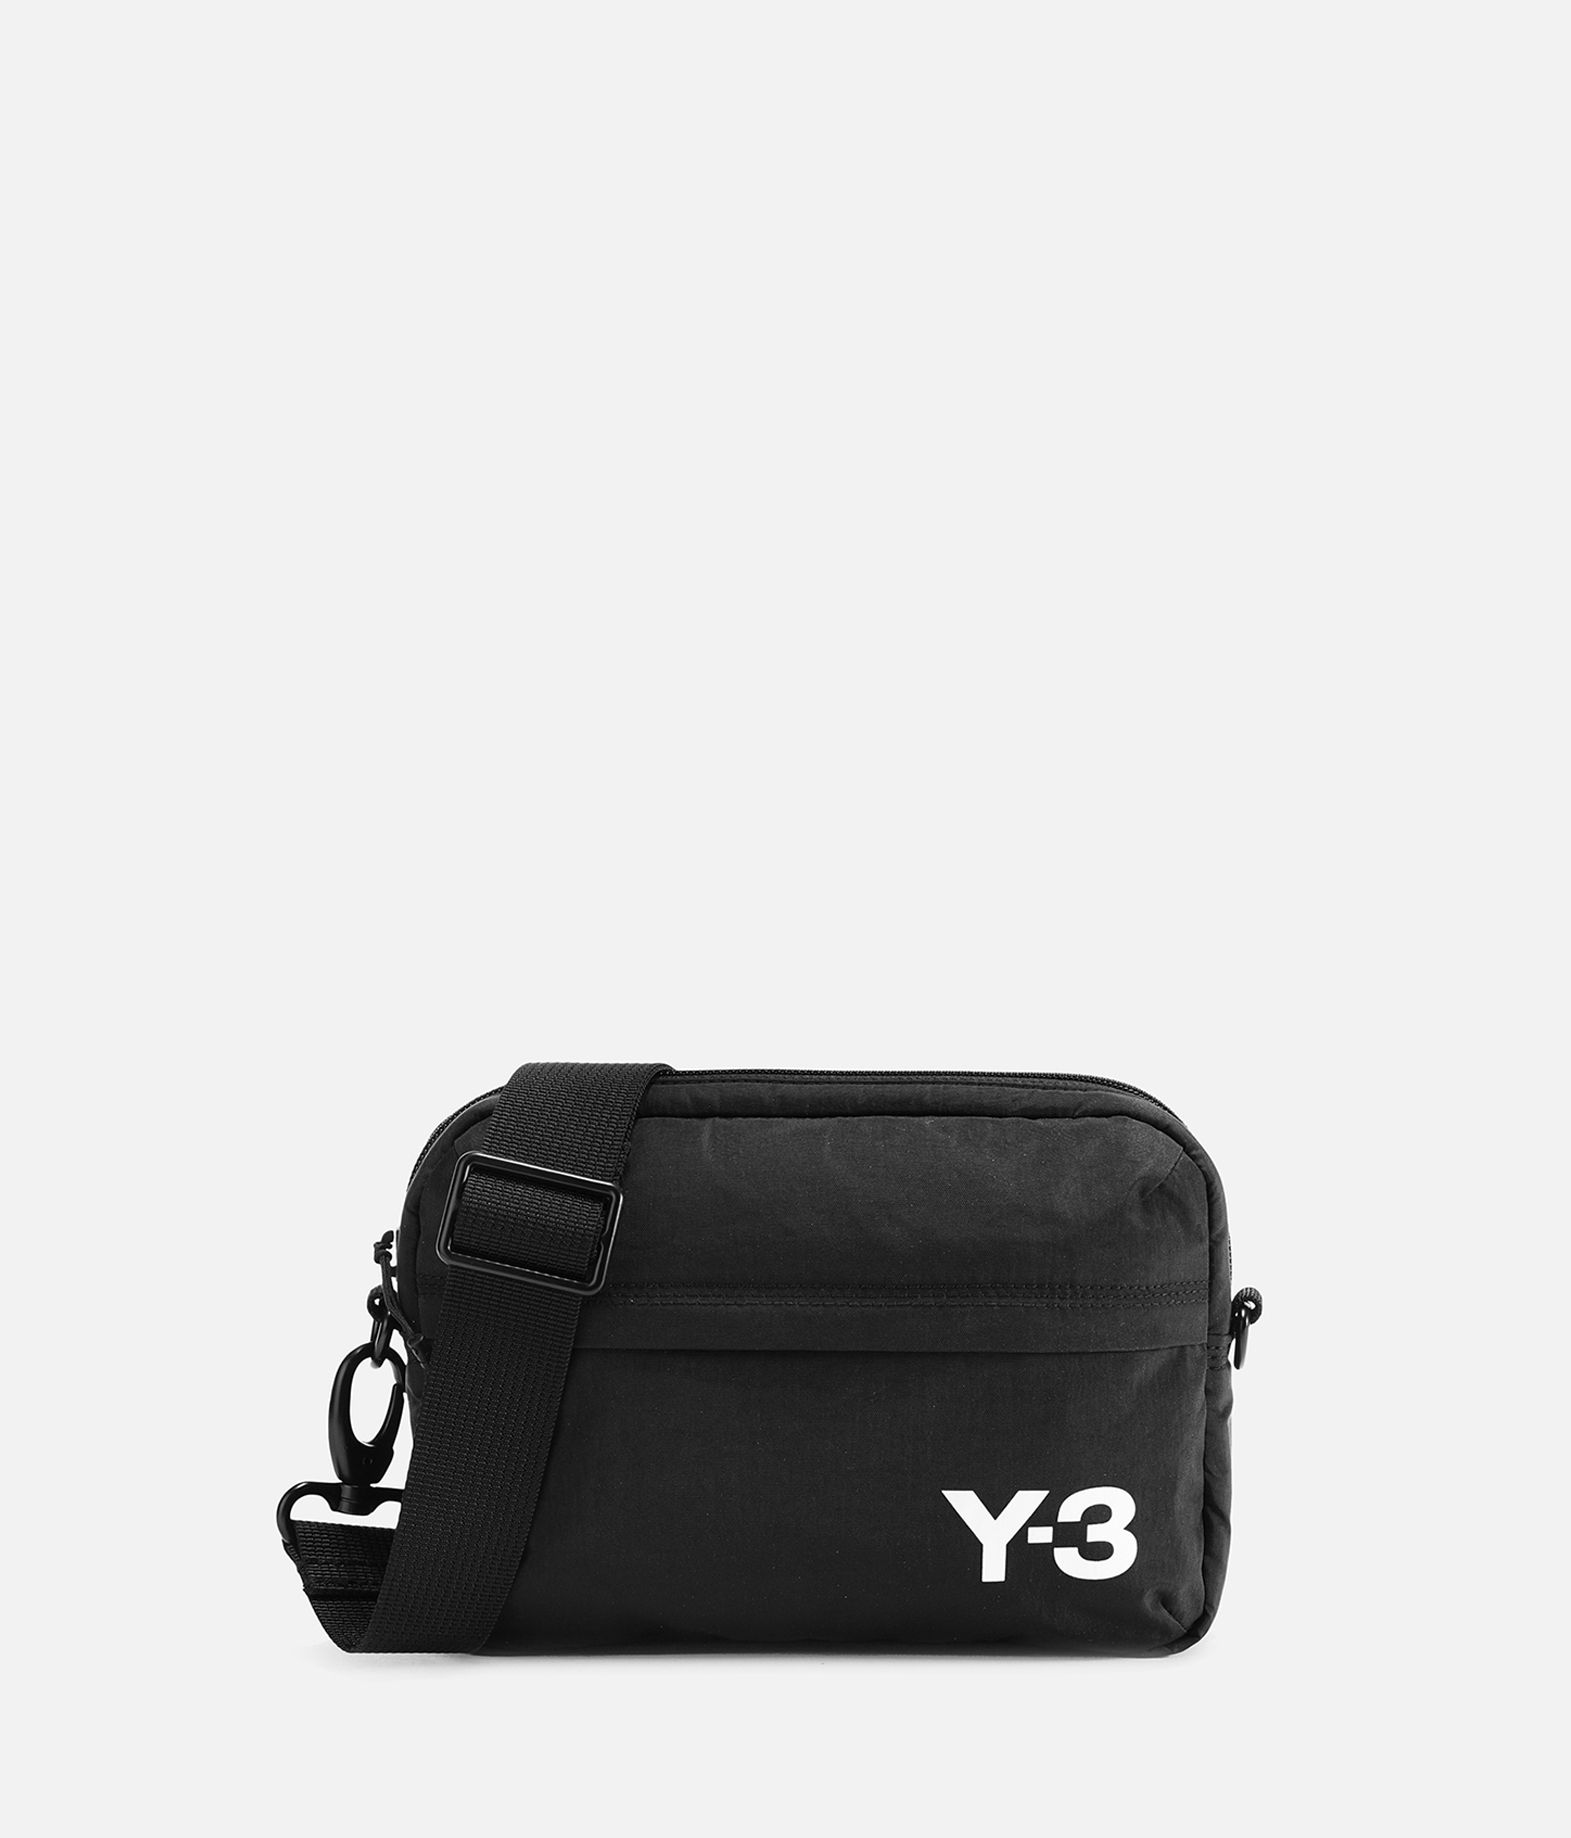 Y-3 Y-3 Sling Bag Shoulder bag E f